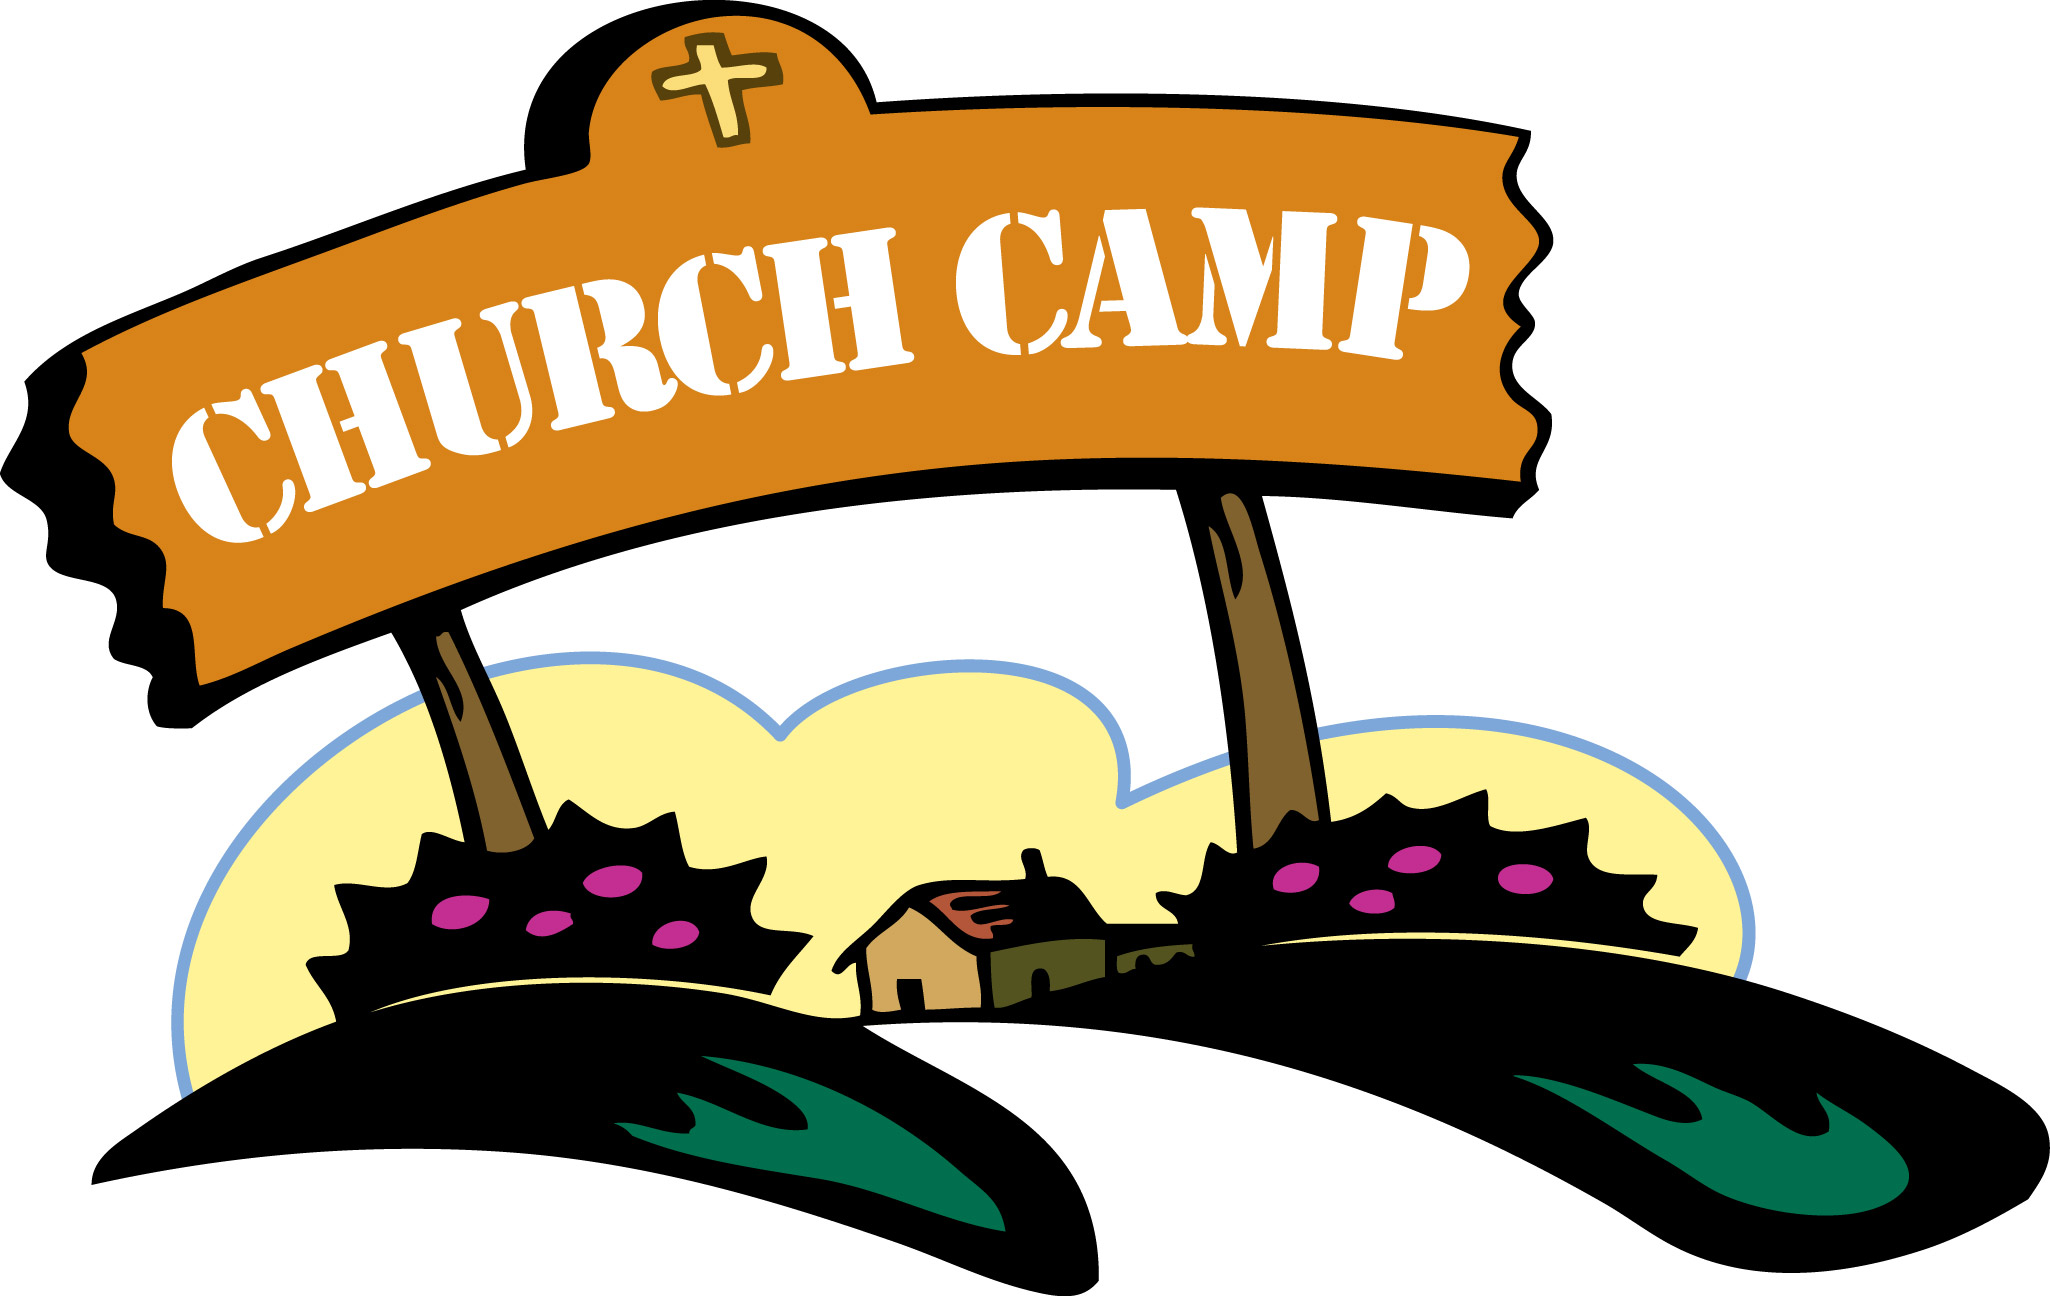 Camp clipart youth camp. Free summer church cliparts